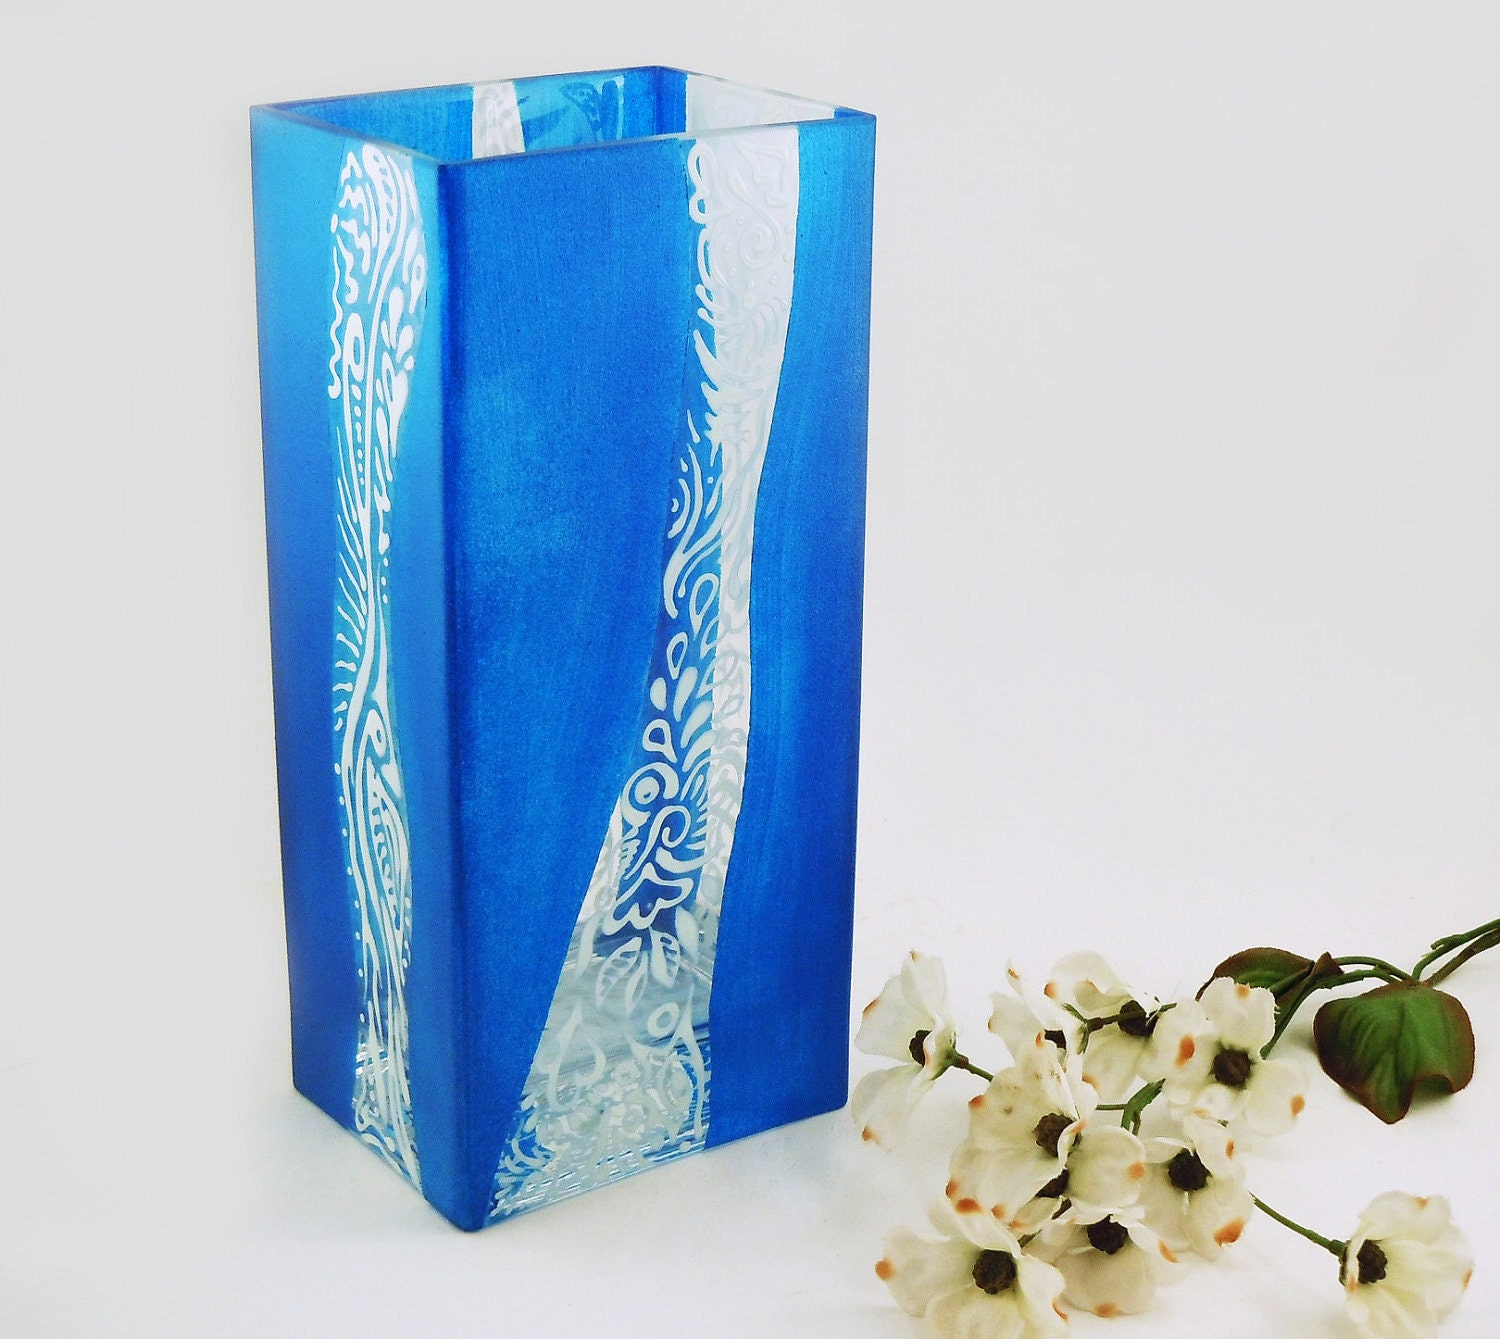 Modern glass vase - Hand painted rectangular glass vase in blue with white designs - CreationsdeFlorence